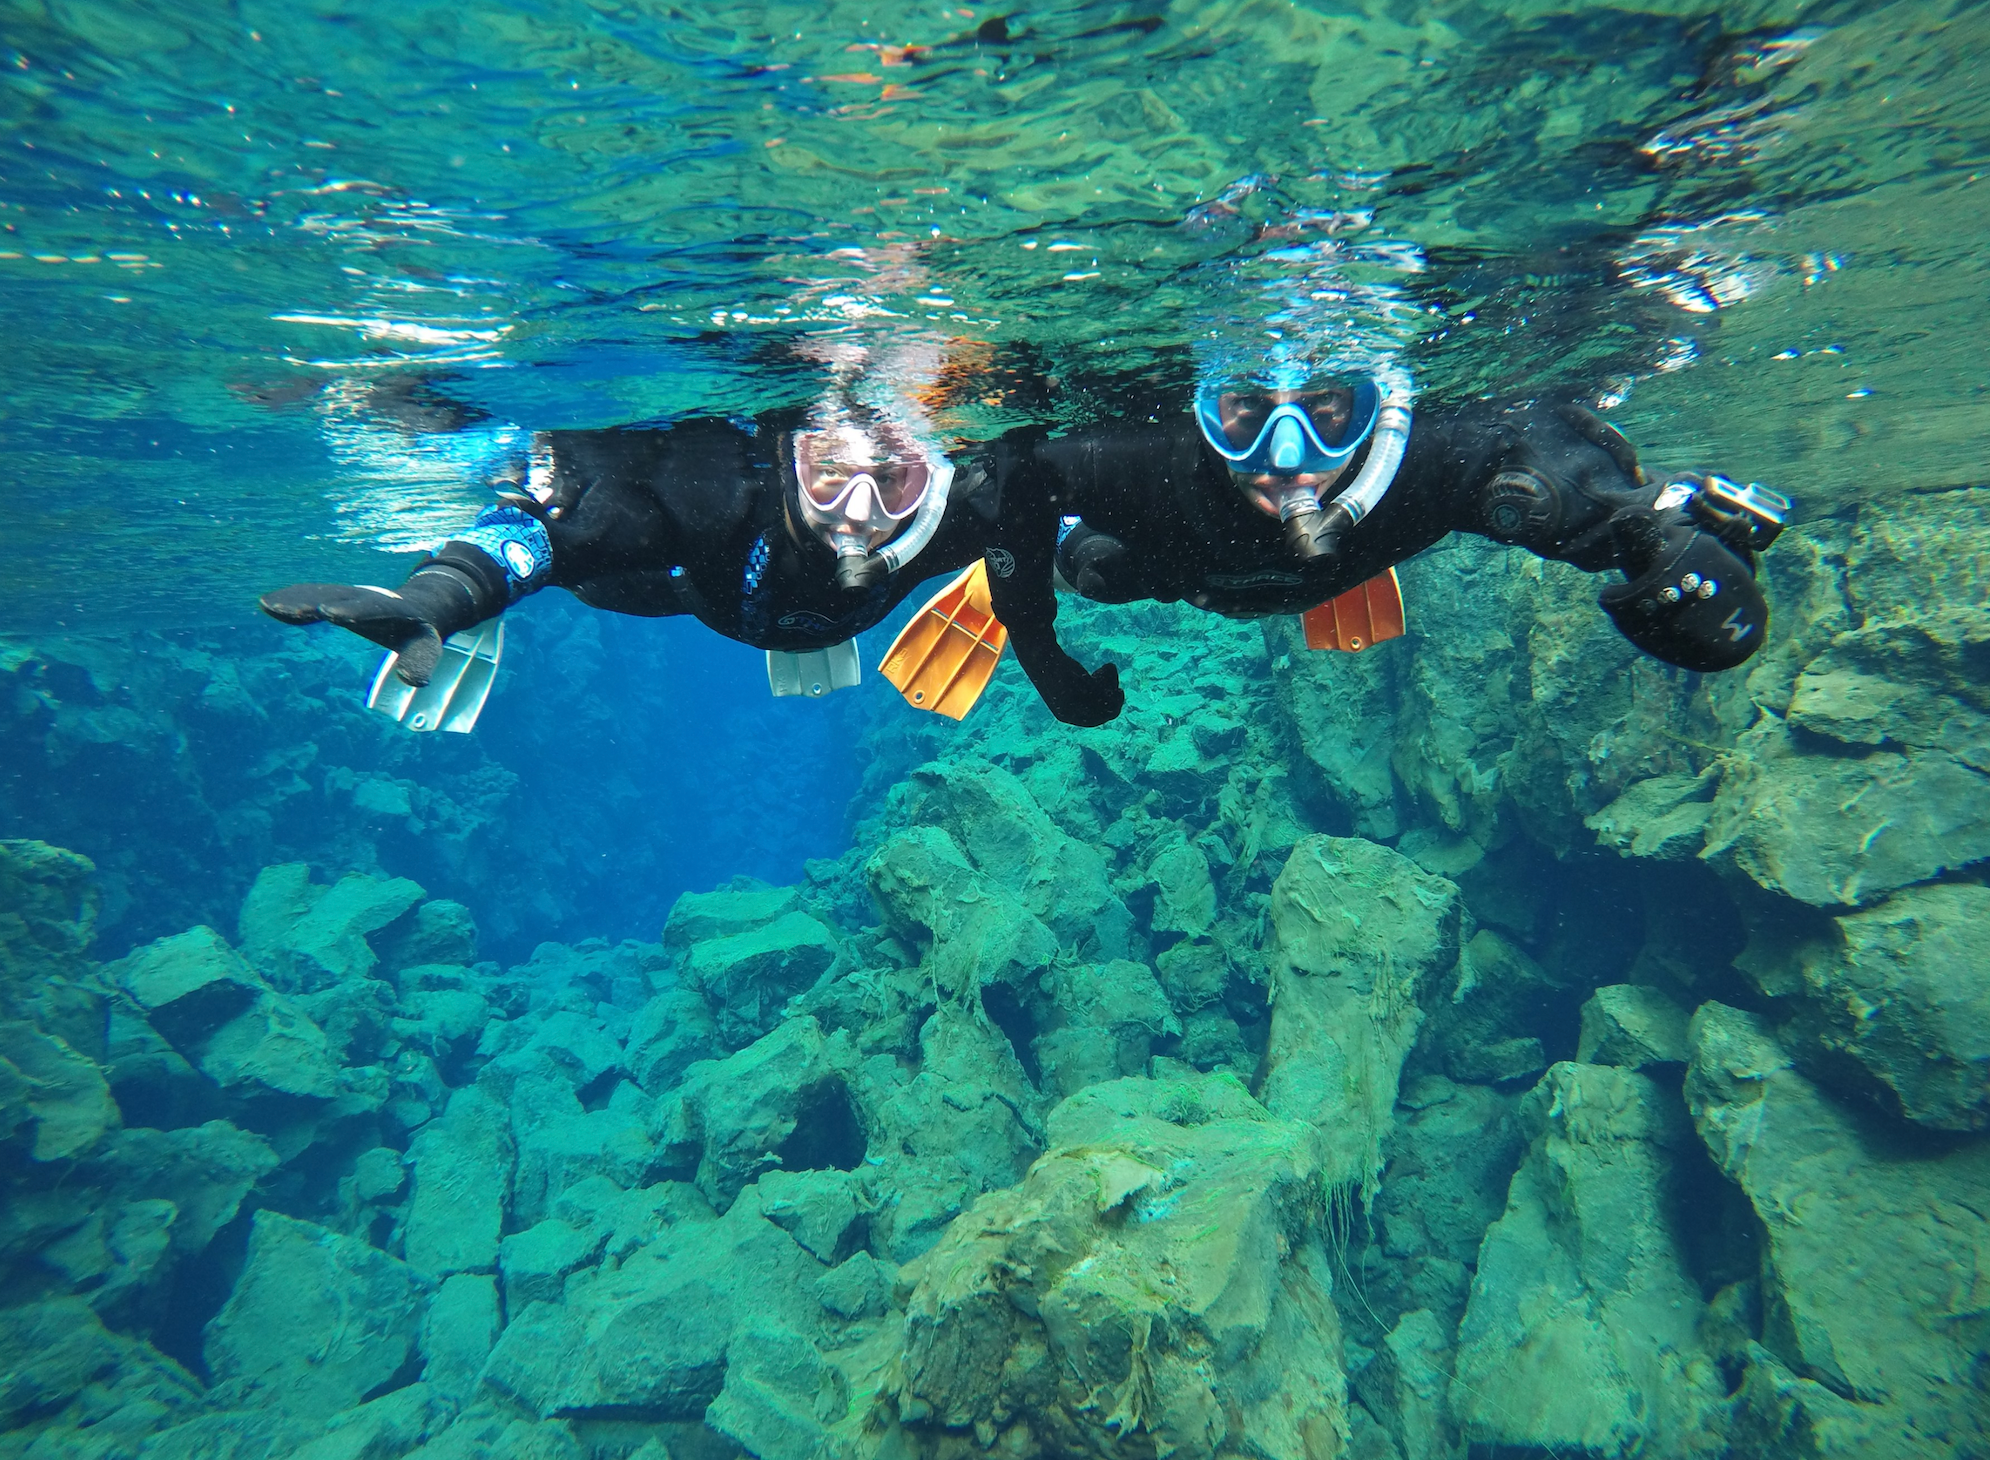 At the Silfra fissure you can snorkel between continents on a once in a lifetime tour.